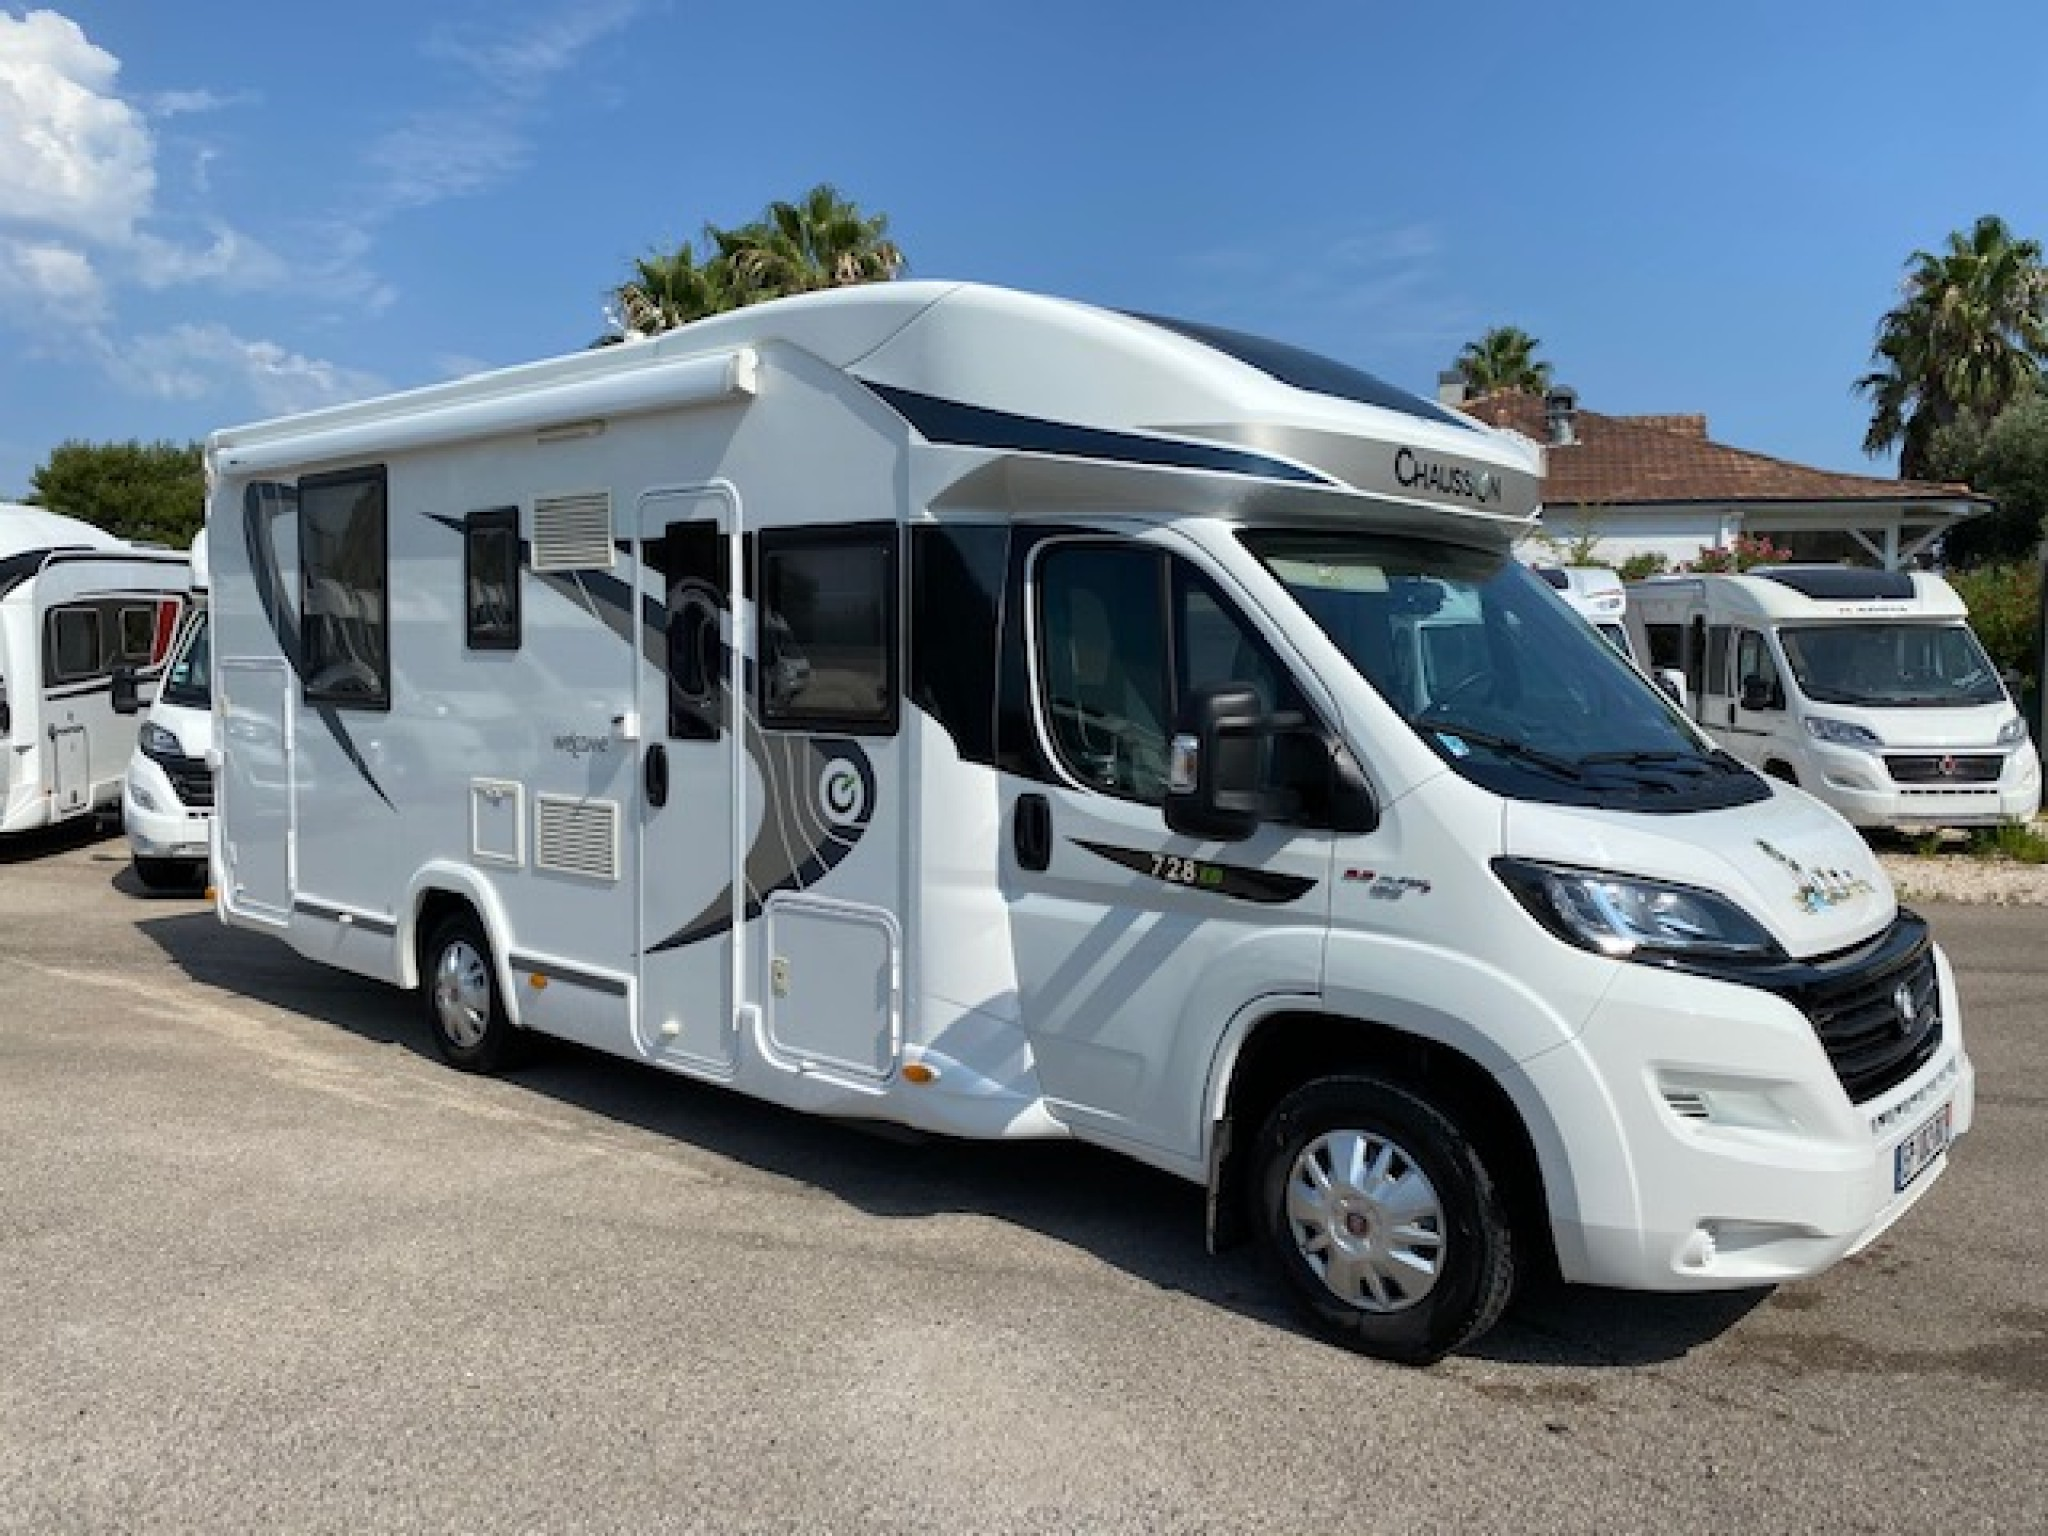 Camping-car CHAUSSON WELCOME 728 EB